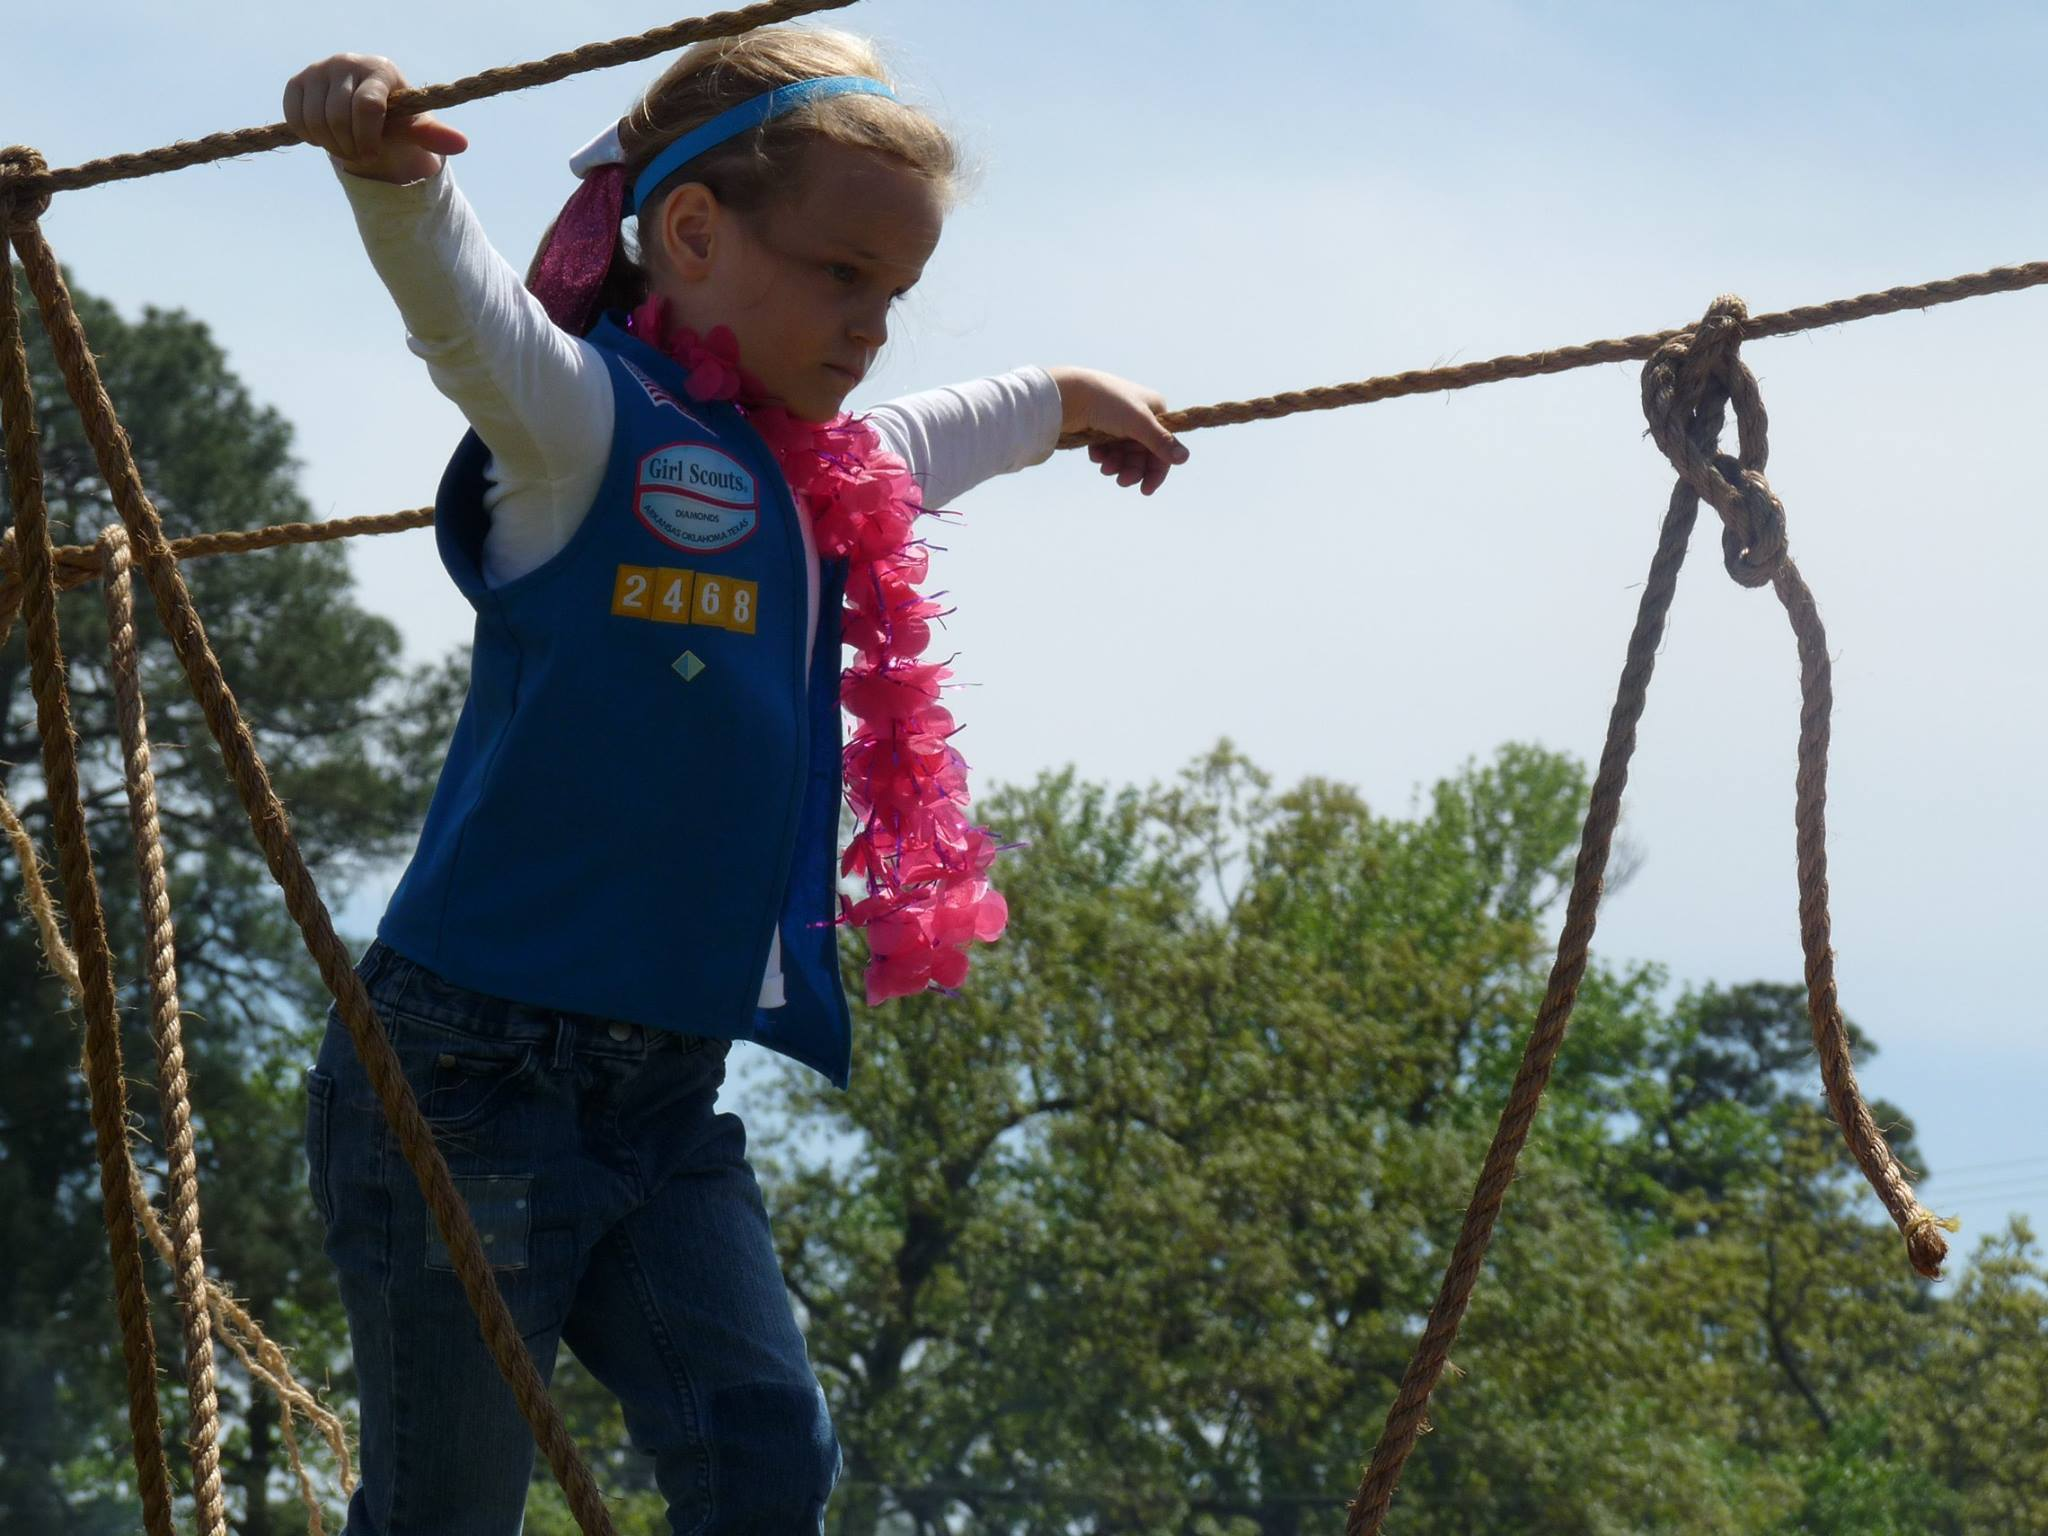 Girl Scout crossing the rope bridge - SOR 2016